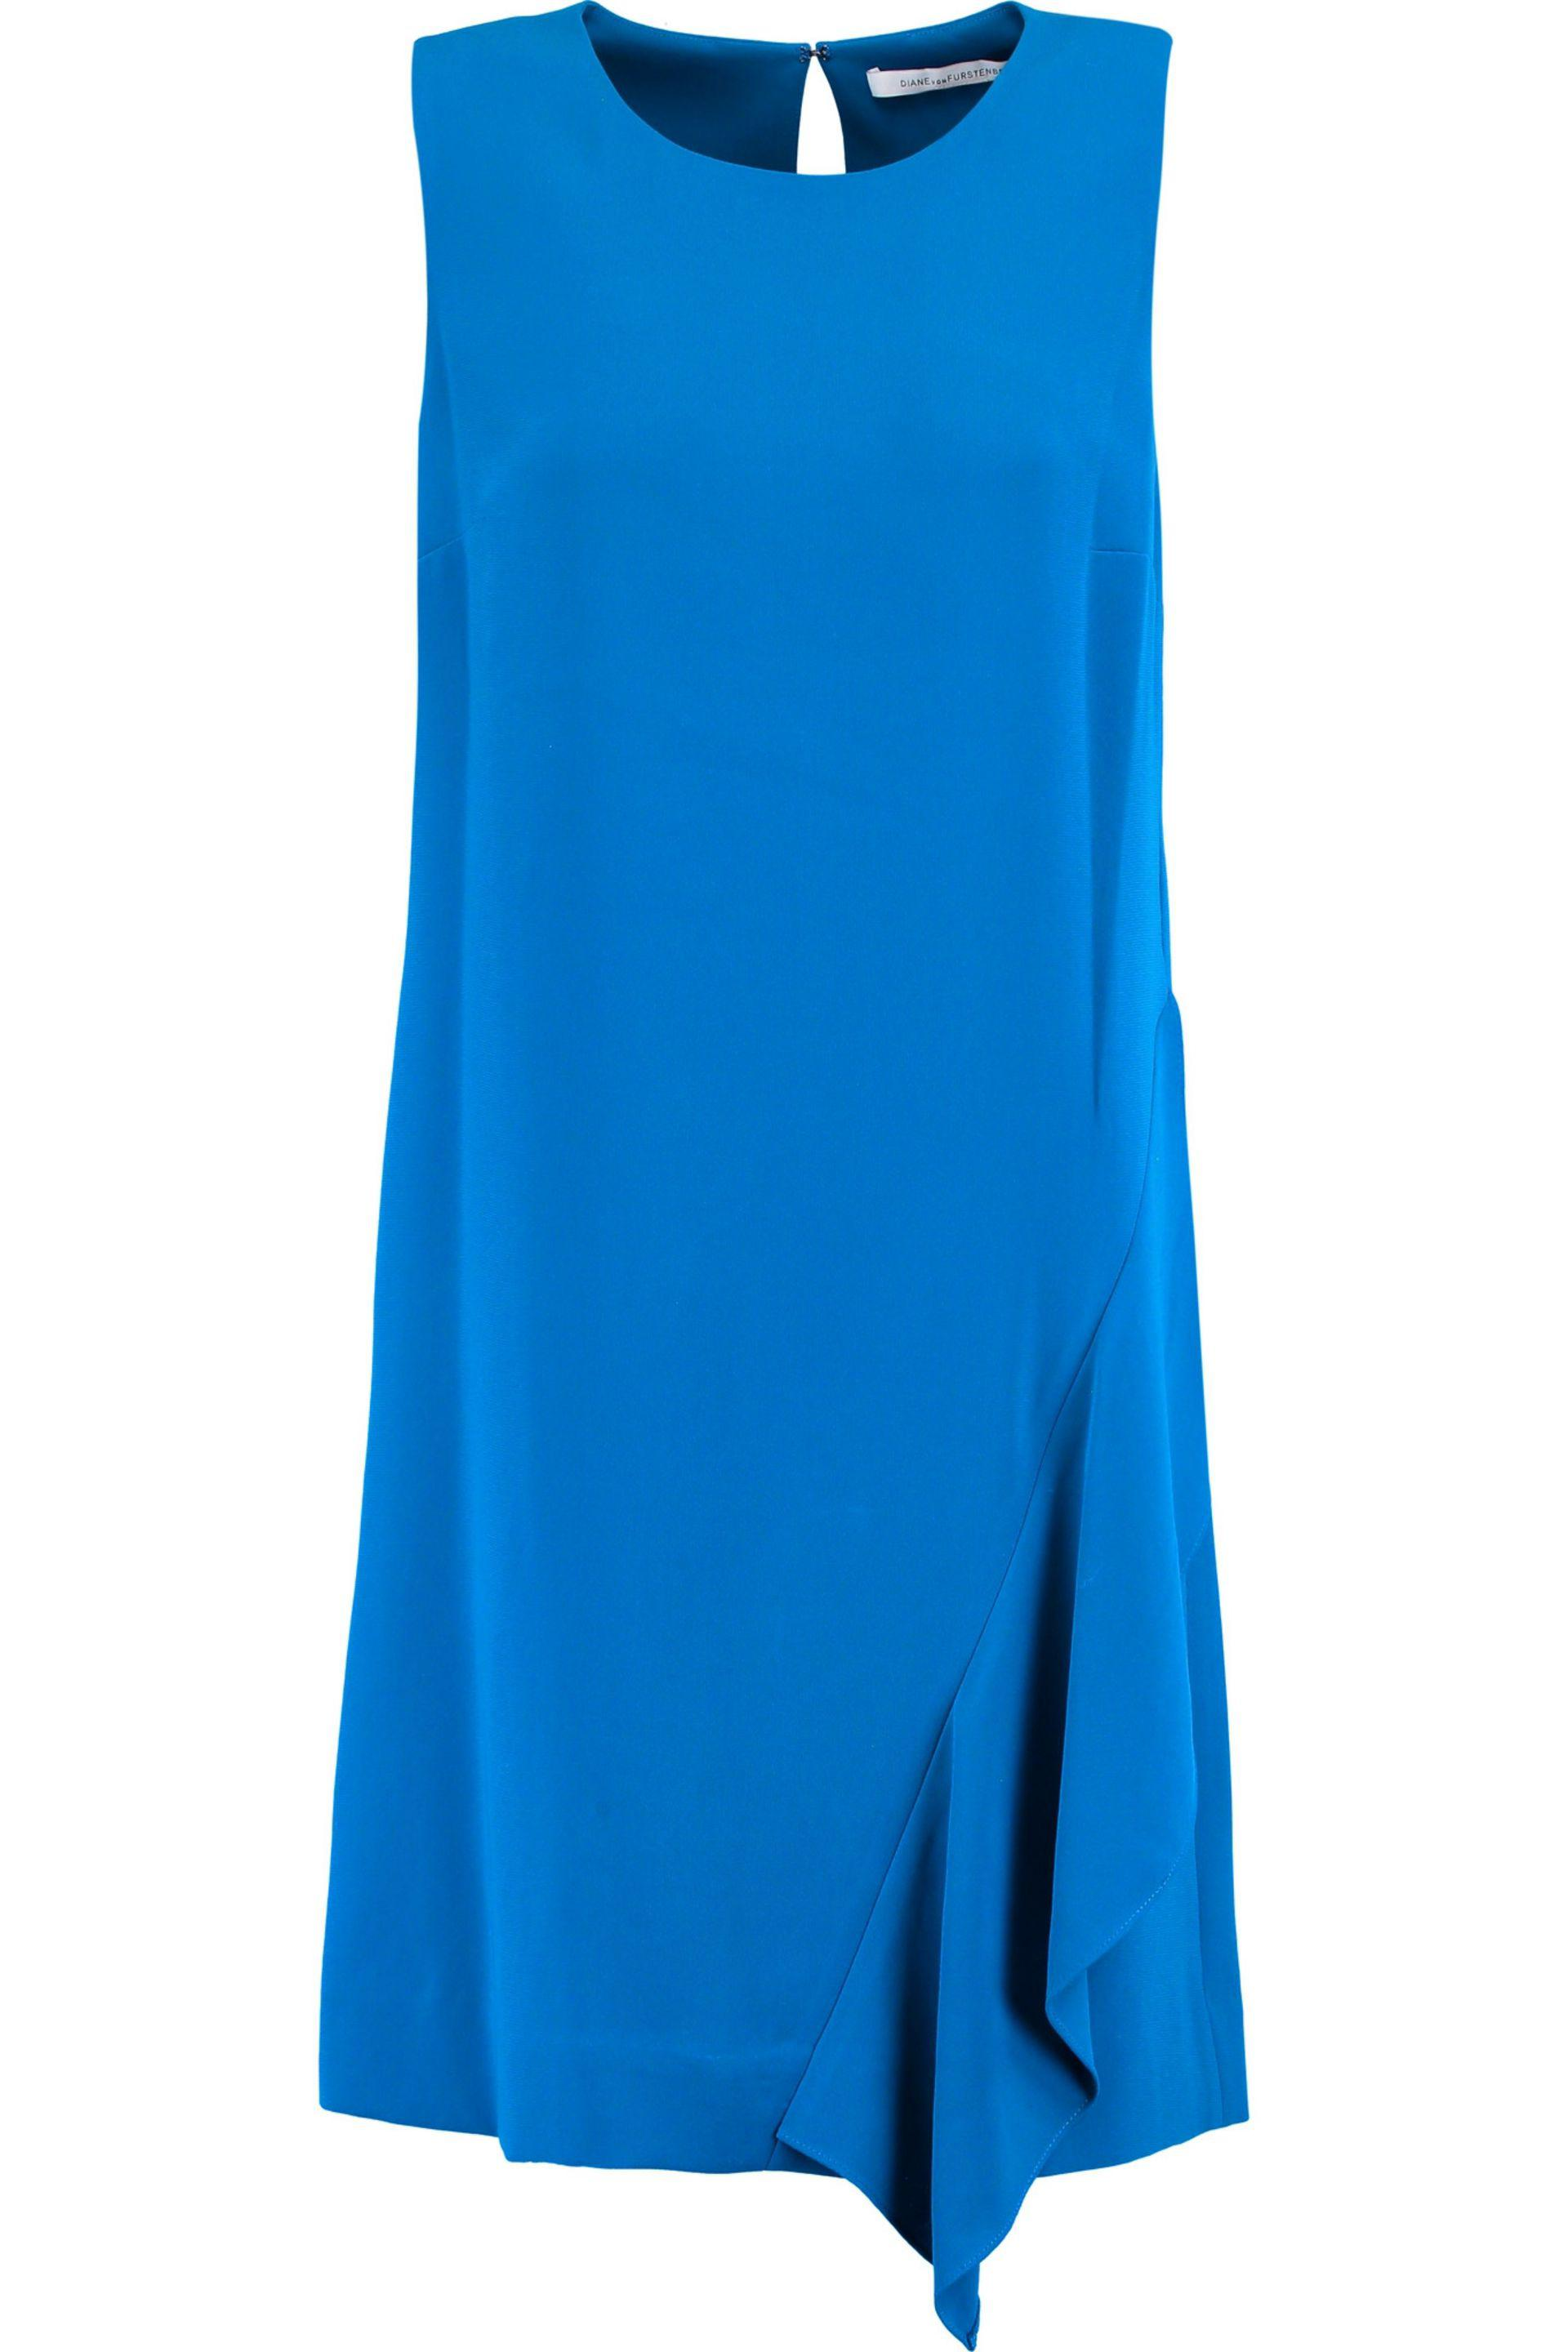 Mm6 By Maison Margiela Woman Ruched Two-tone Cotton Mini Dress Cobalt Blue Size M Maison Martin Margiela Clearance Amazing Price Buy Cheap Purchase Cheap 100% Authentic Outlet Really 5aUVj